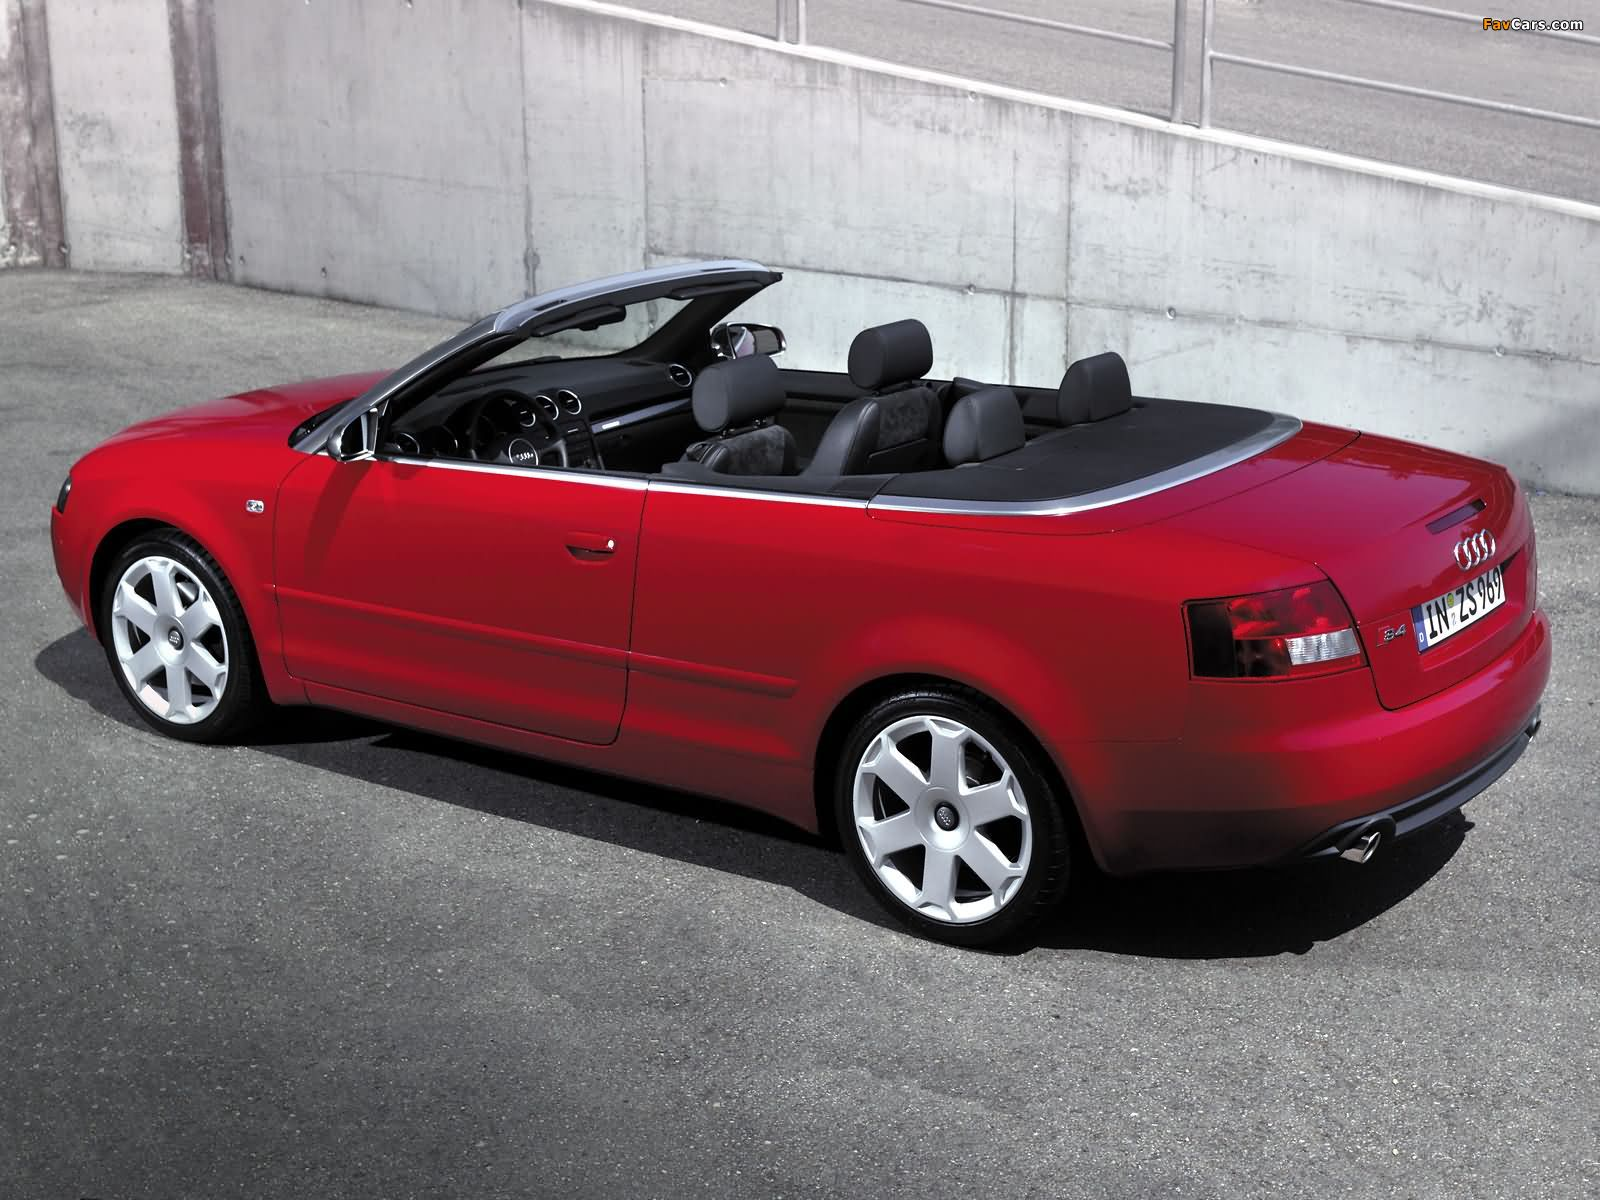 audi s4 cabrio b6 8h 2002 05 images 1600x1200. Black Bedroom Furniture Sets. Home Design Ideas